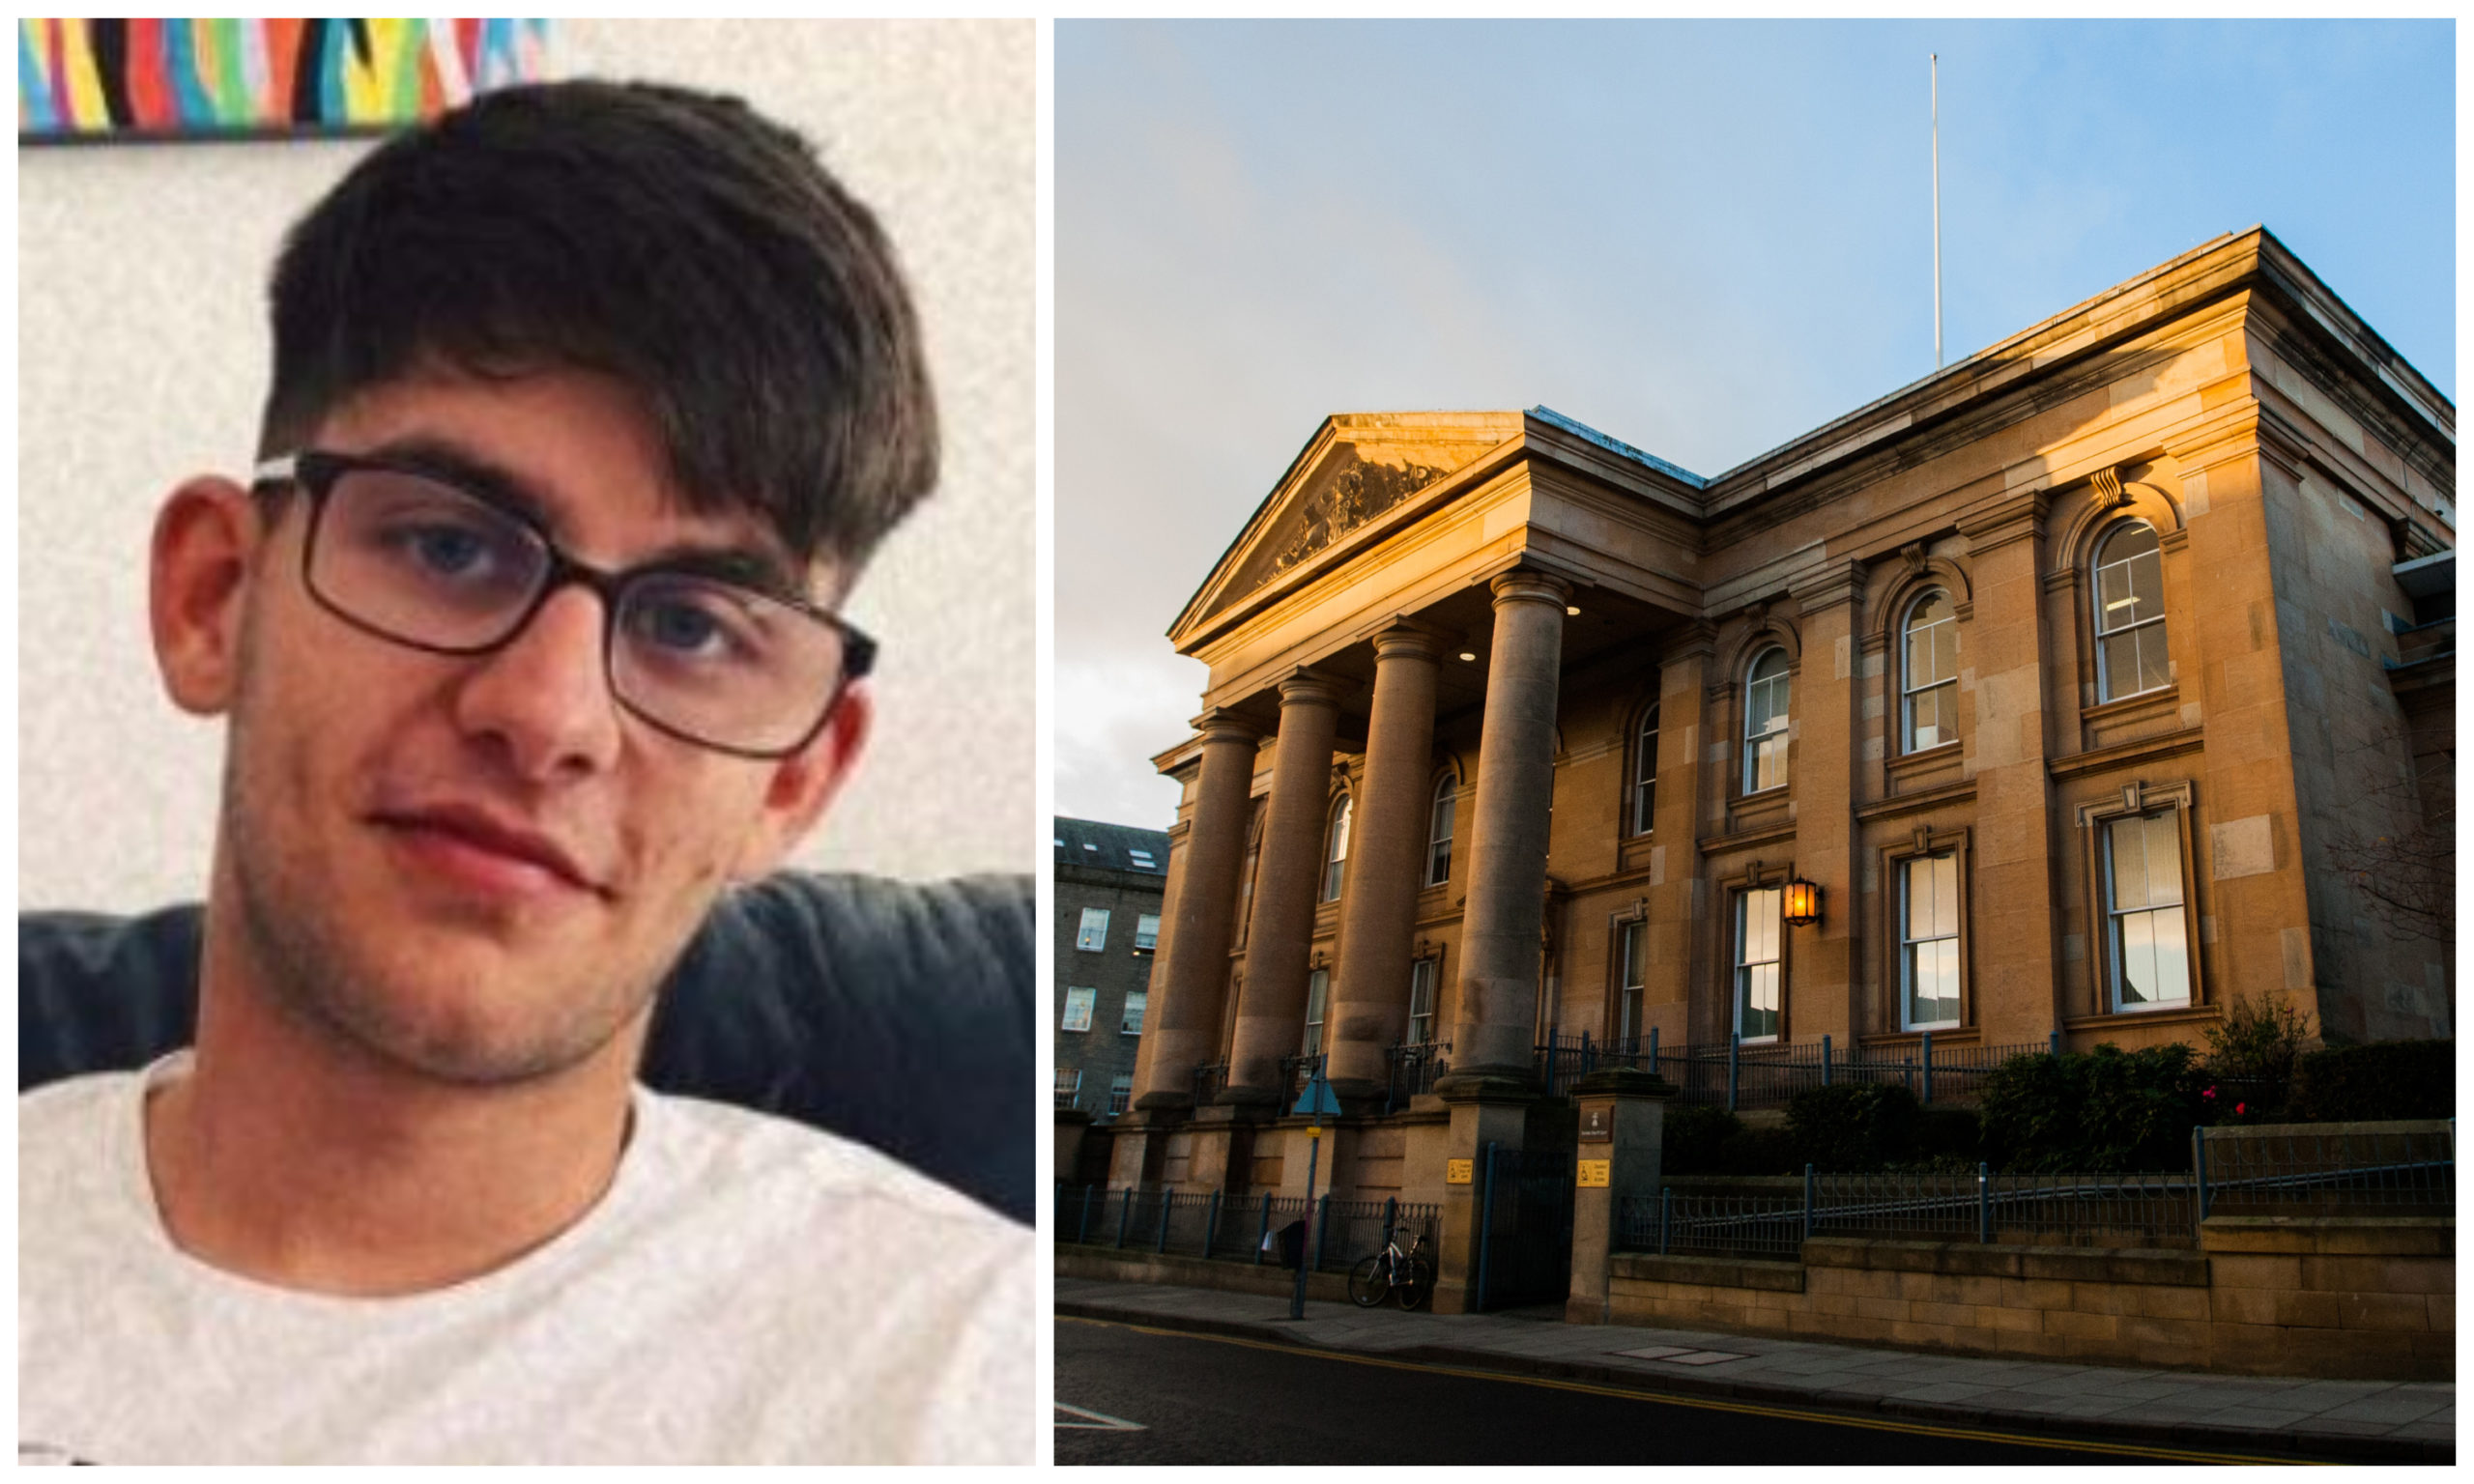 Nomanksy pleaded guilty to assaulting the officer during the incident in Fintry last year, when he appeared at Dundee Sheriff Court.